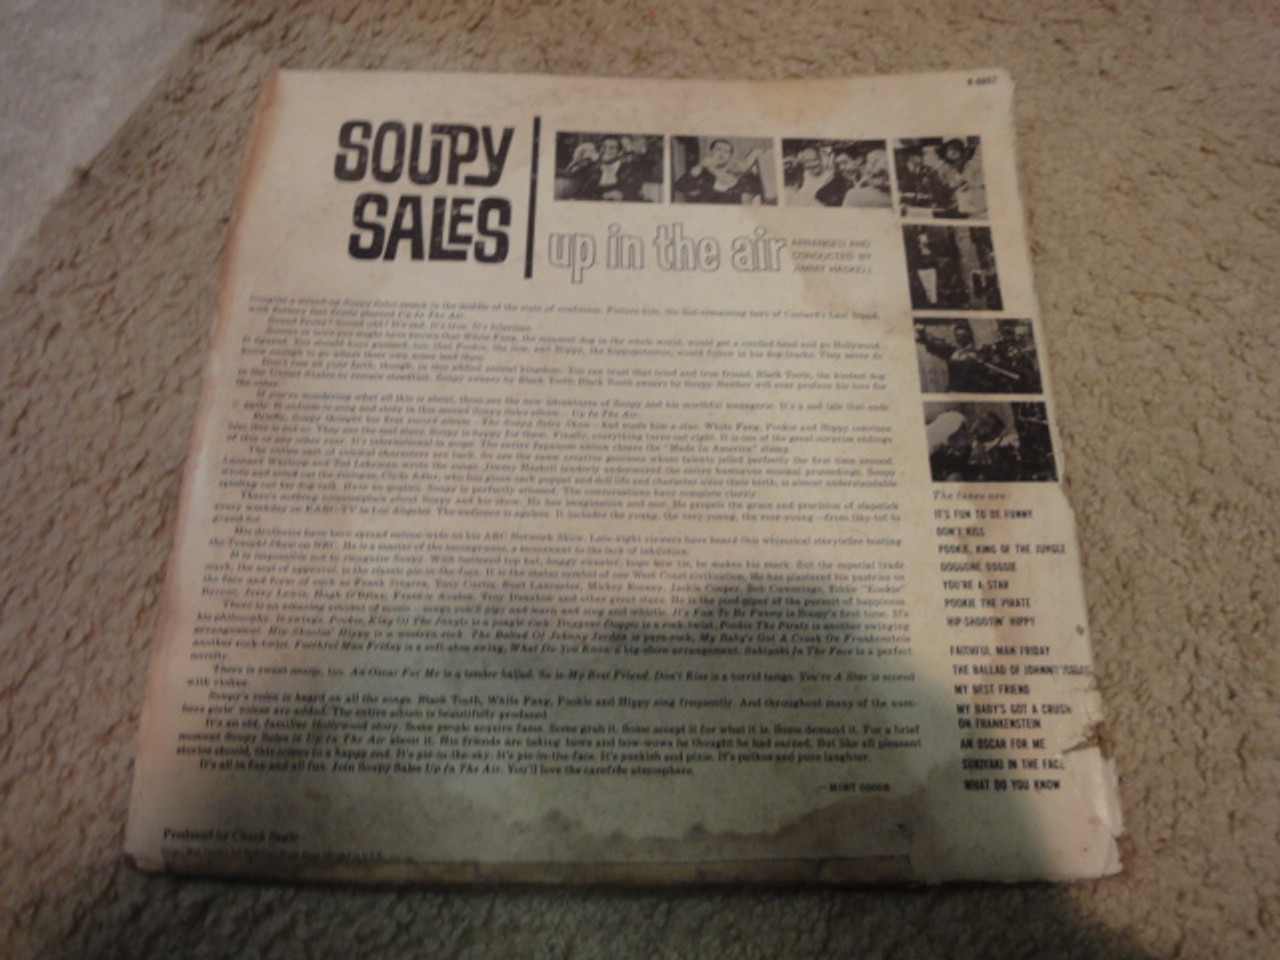 """Sales, Soupy """"Up In The Air"""" 1965 LP Signed Autograph """"My Baby's Got A Crush On Frankenstein"""""""